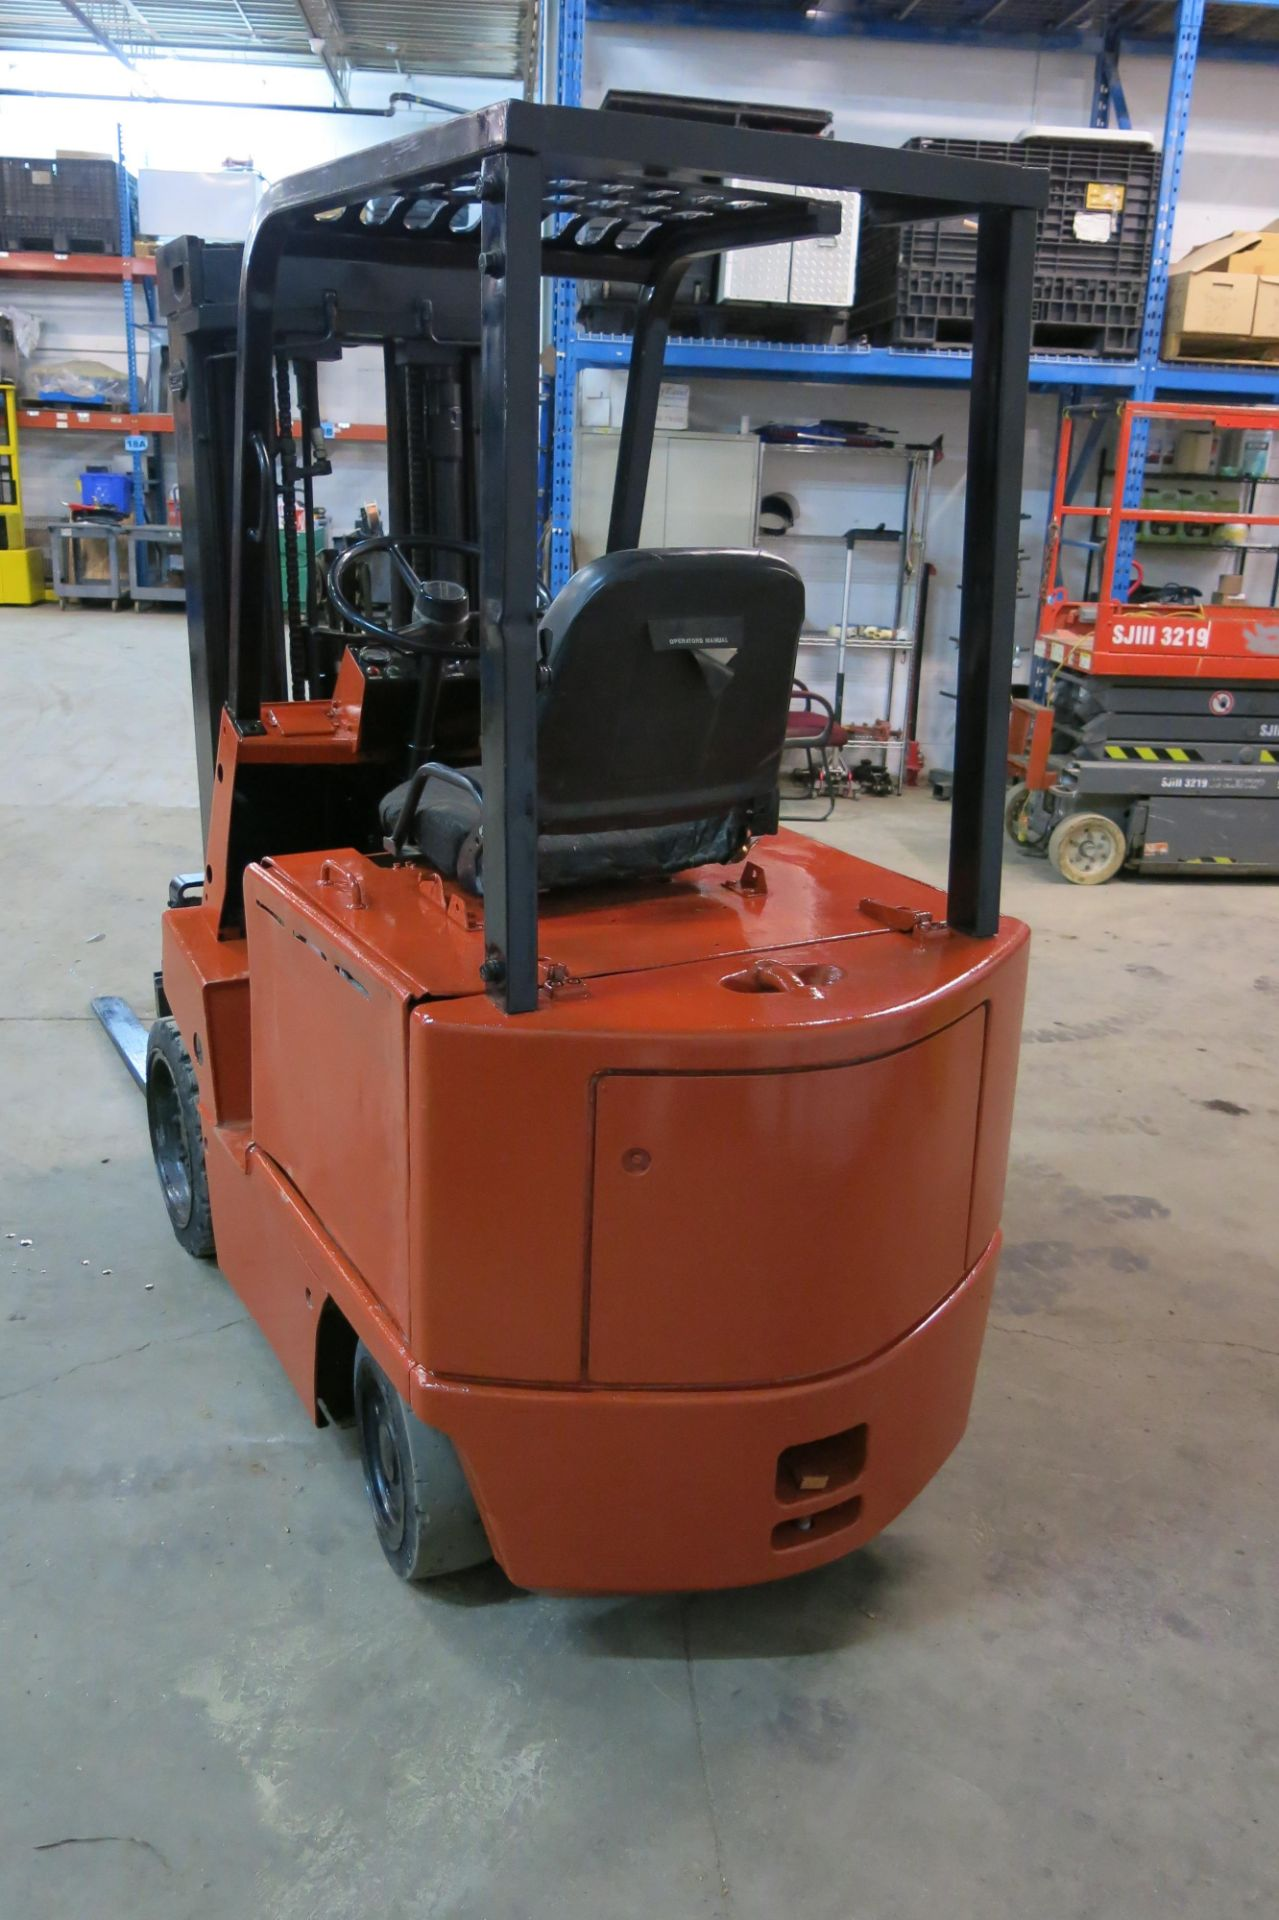 Lot 227 - NISSAN, CYB02L20S, 4,000 LBS, 3 STAGE, ELECTRIC FORKLIFT, CHARGER, 6,304 HOURS, S/N CY802-002260